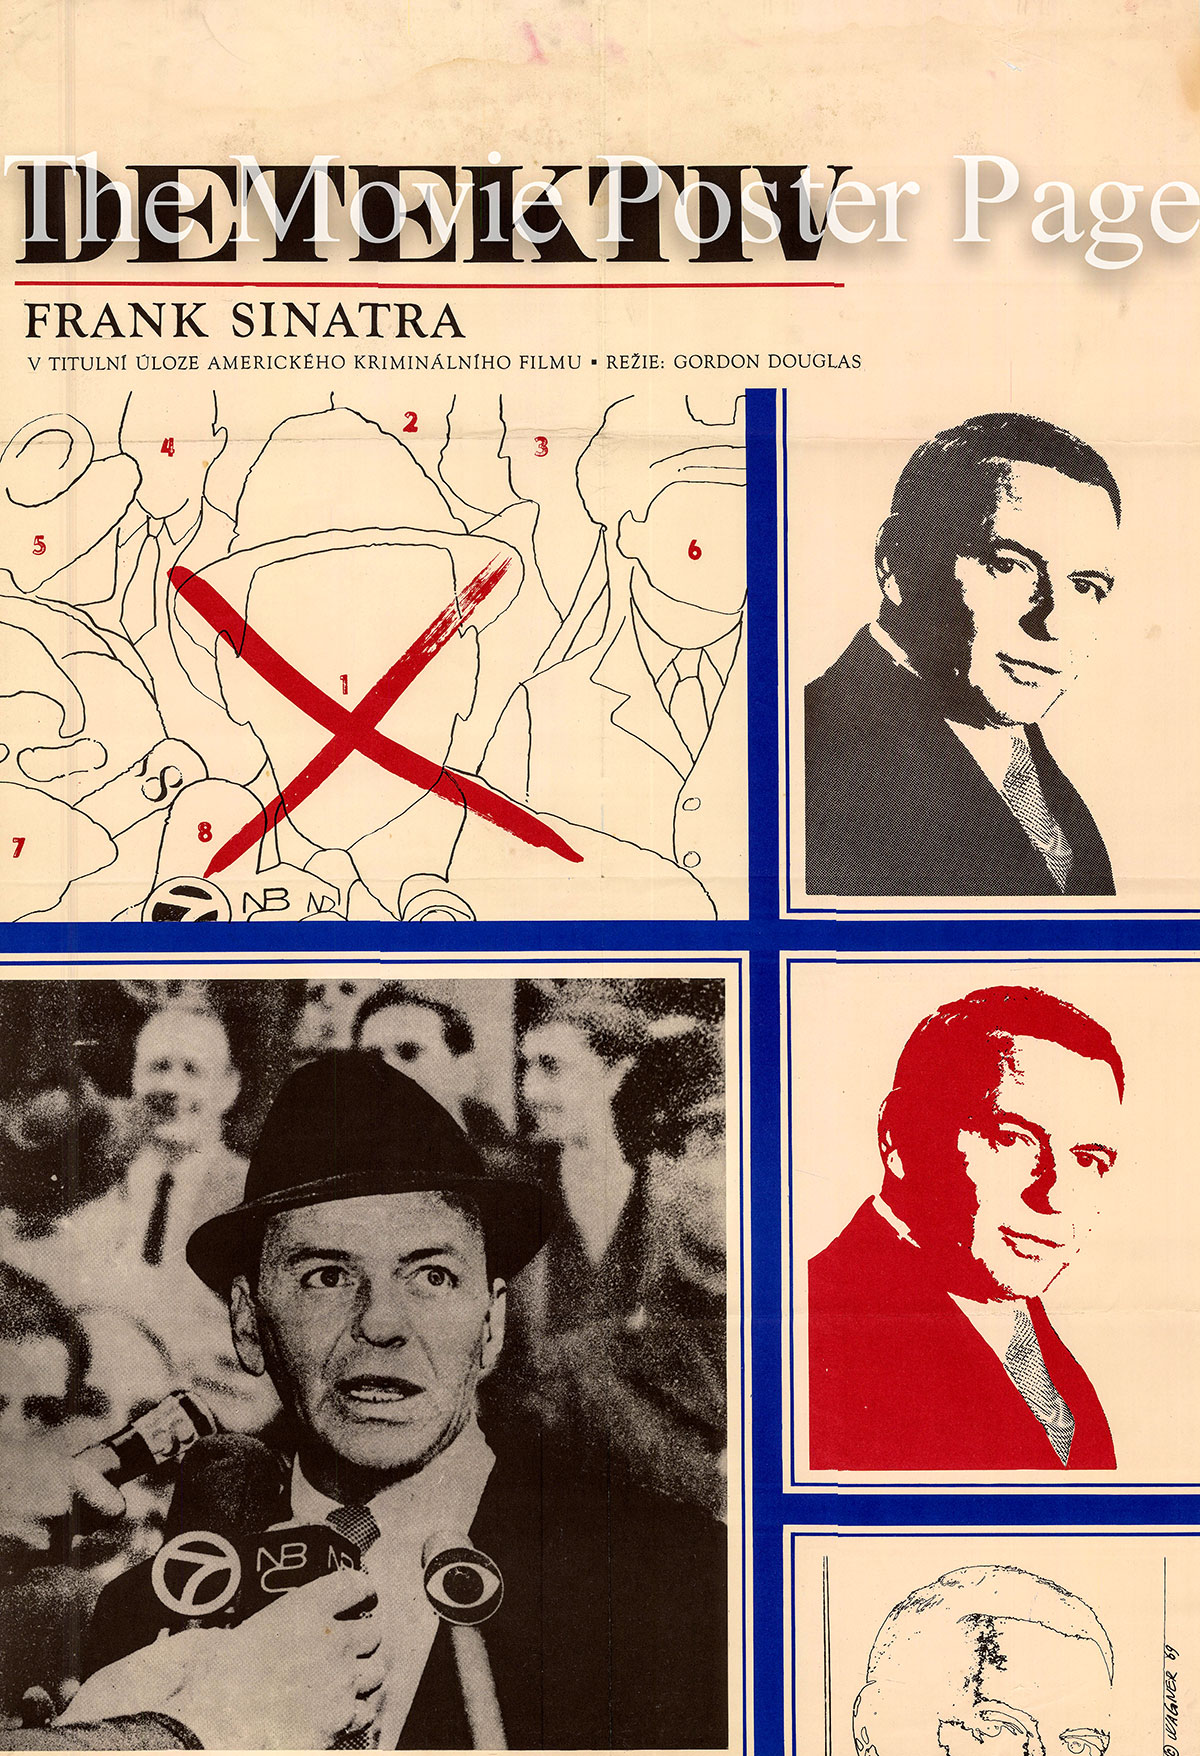 Pictured is a Czech promotional poster for a 1969 rerelease of the 1968 Gordon Douglas film The Detective starring Frank Sinatra as Joe Leland.